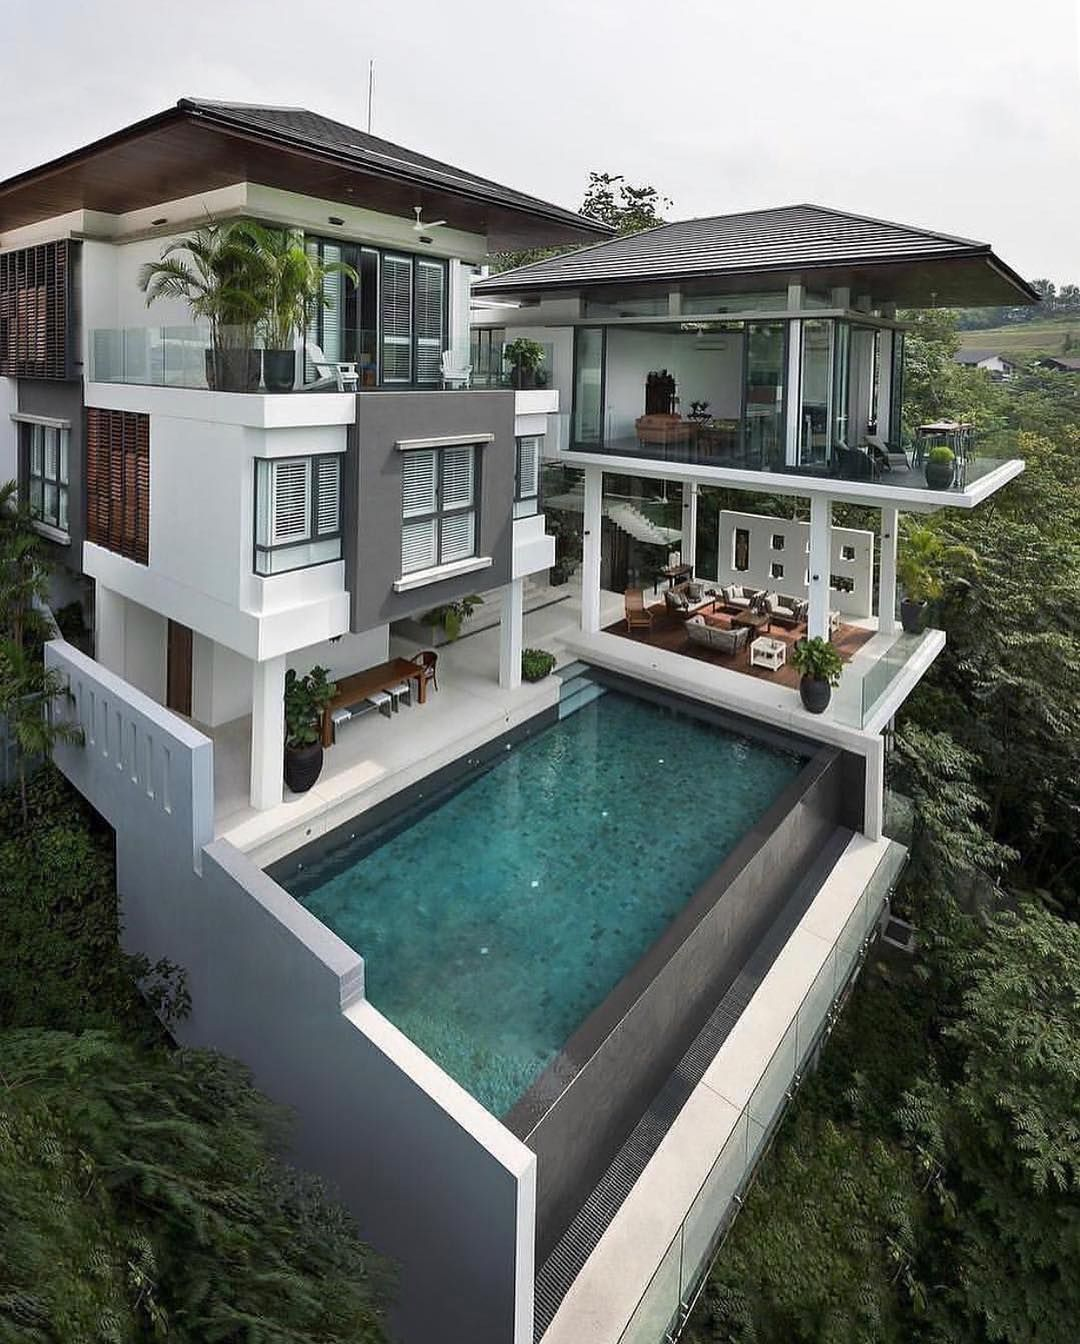 Real Estate Luxury Homes On Instagram Awesome Home Built Around Nature In Kuala Lumpur Would You Cool House Designs House Exterior Modern House Exterior